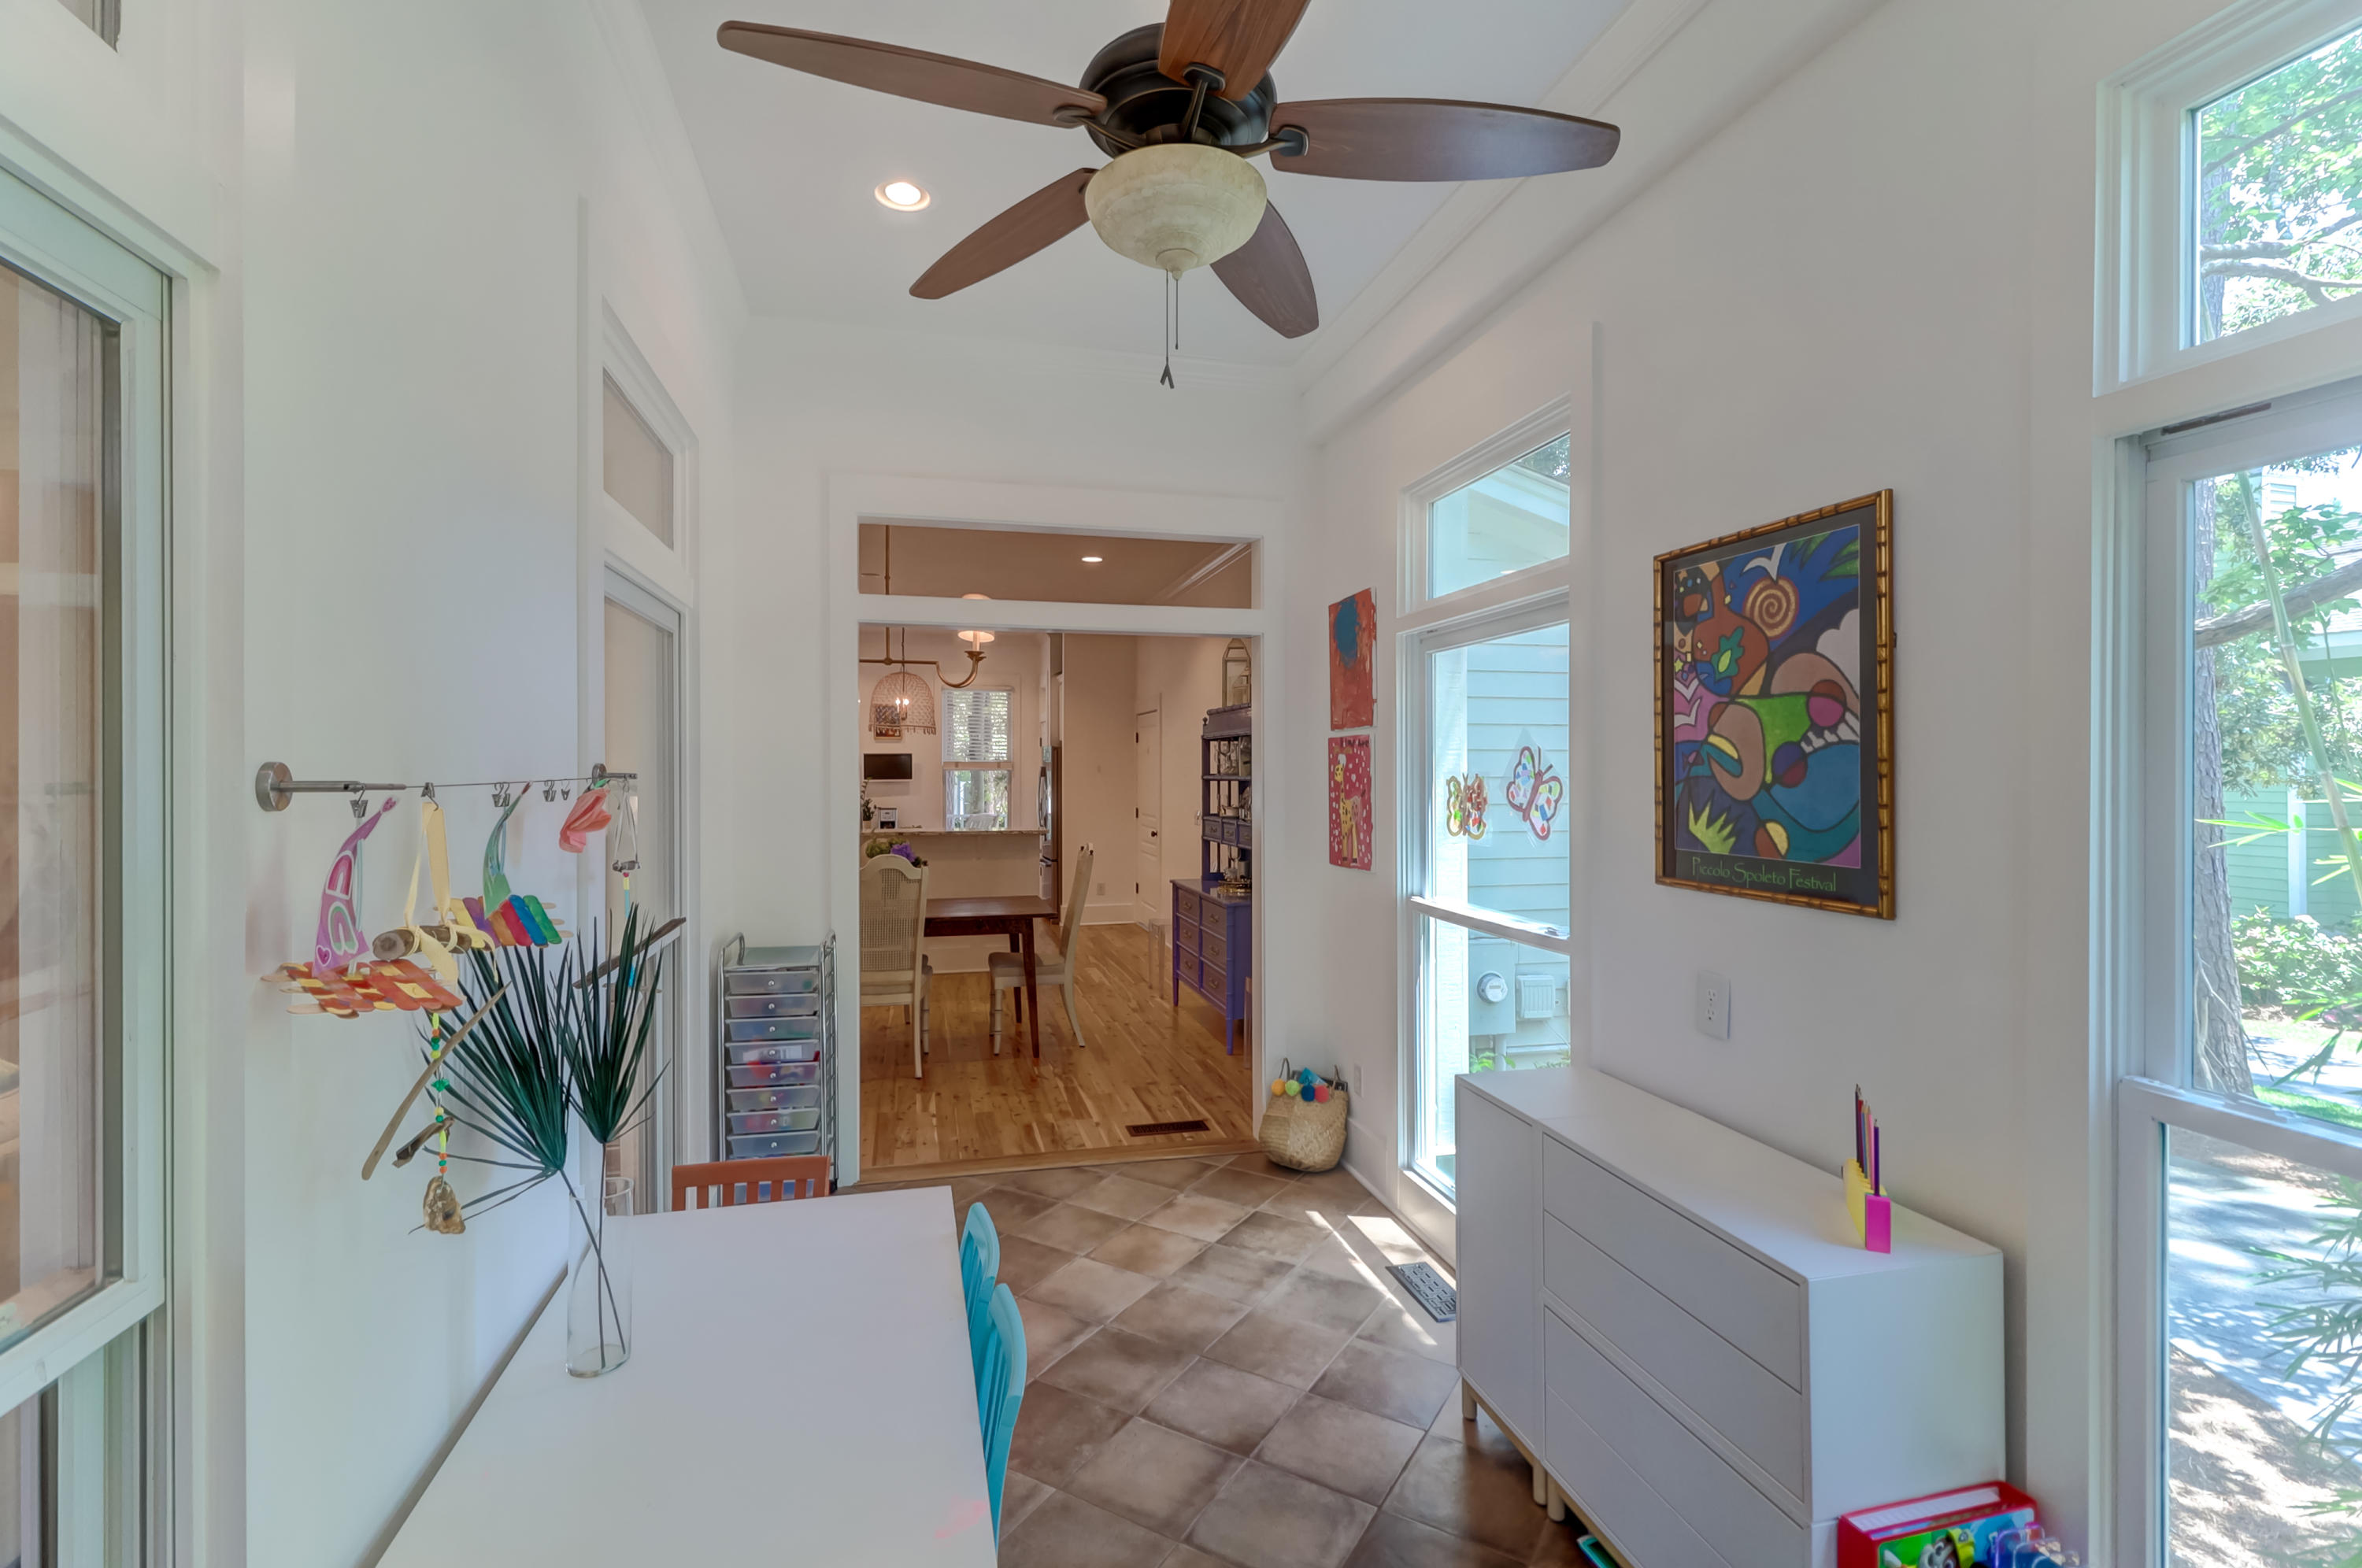 The Villages In St Johns Woods Homes For Sale - 5056 Coral Reef Dr, Johns Island, SC - 24